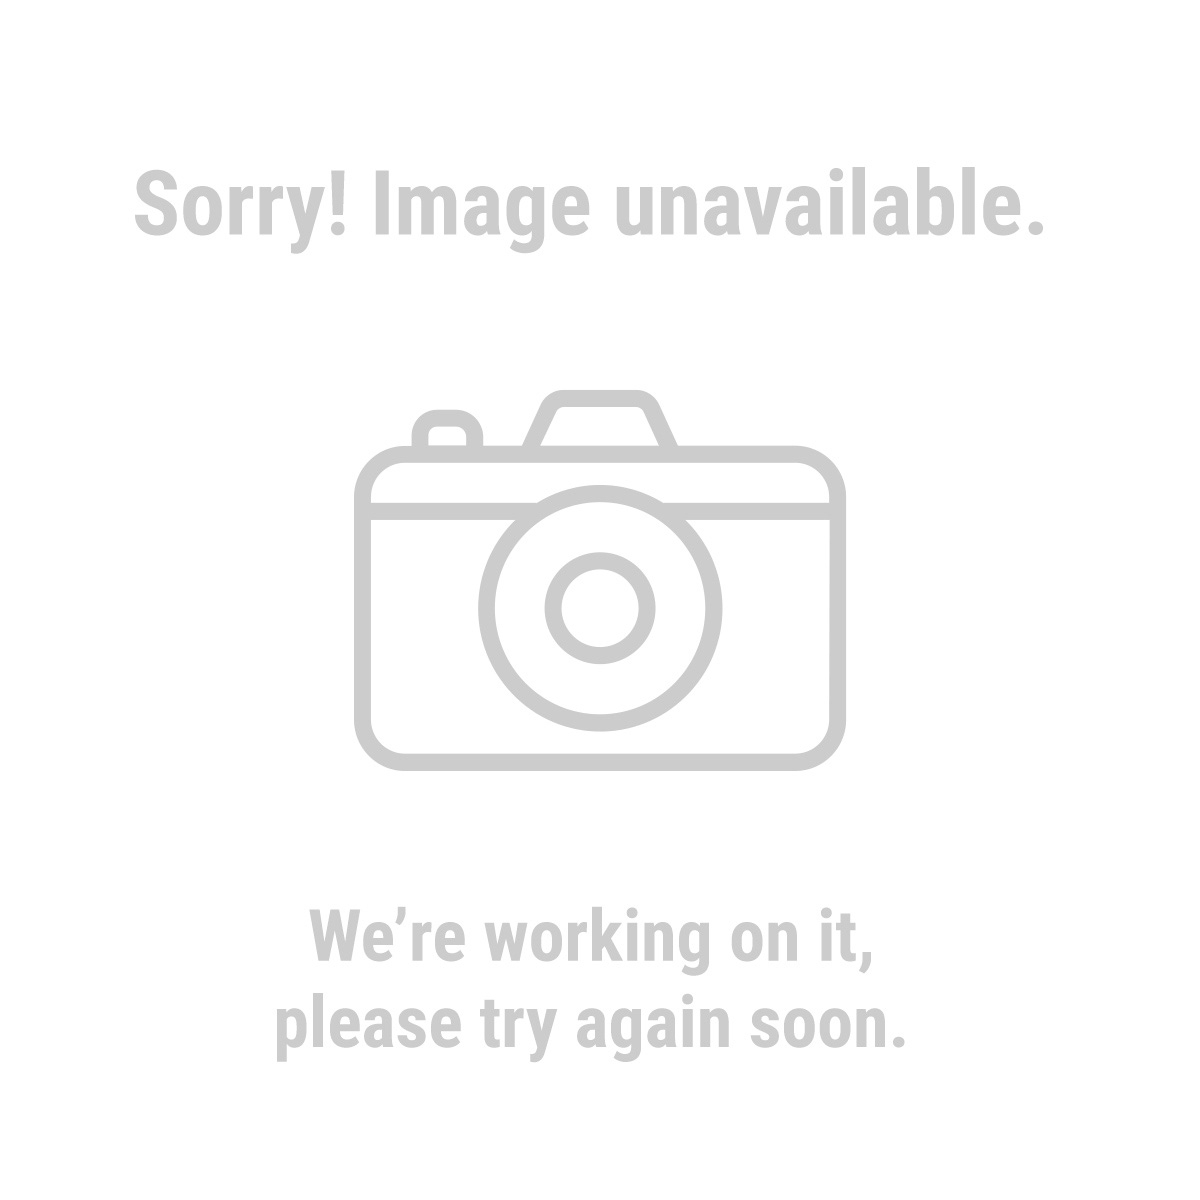 Warrior® 61549 1/16 in. Titanium Nitride Coated High Speed Steel Drill Bits,  Piece